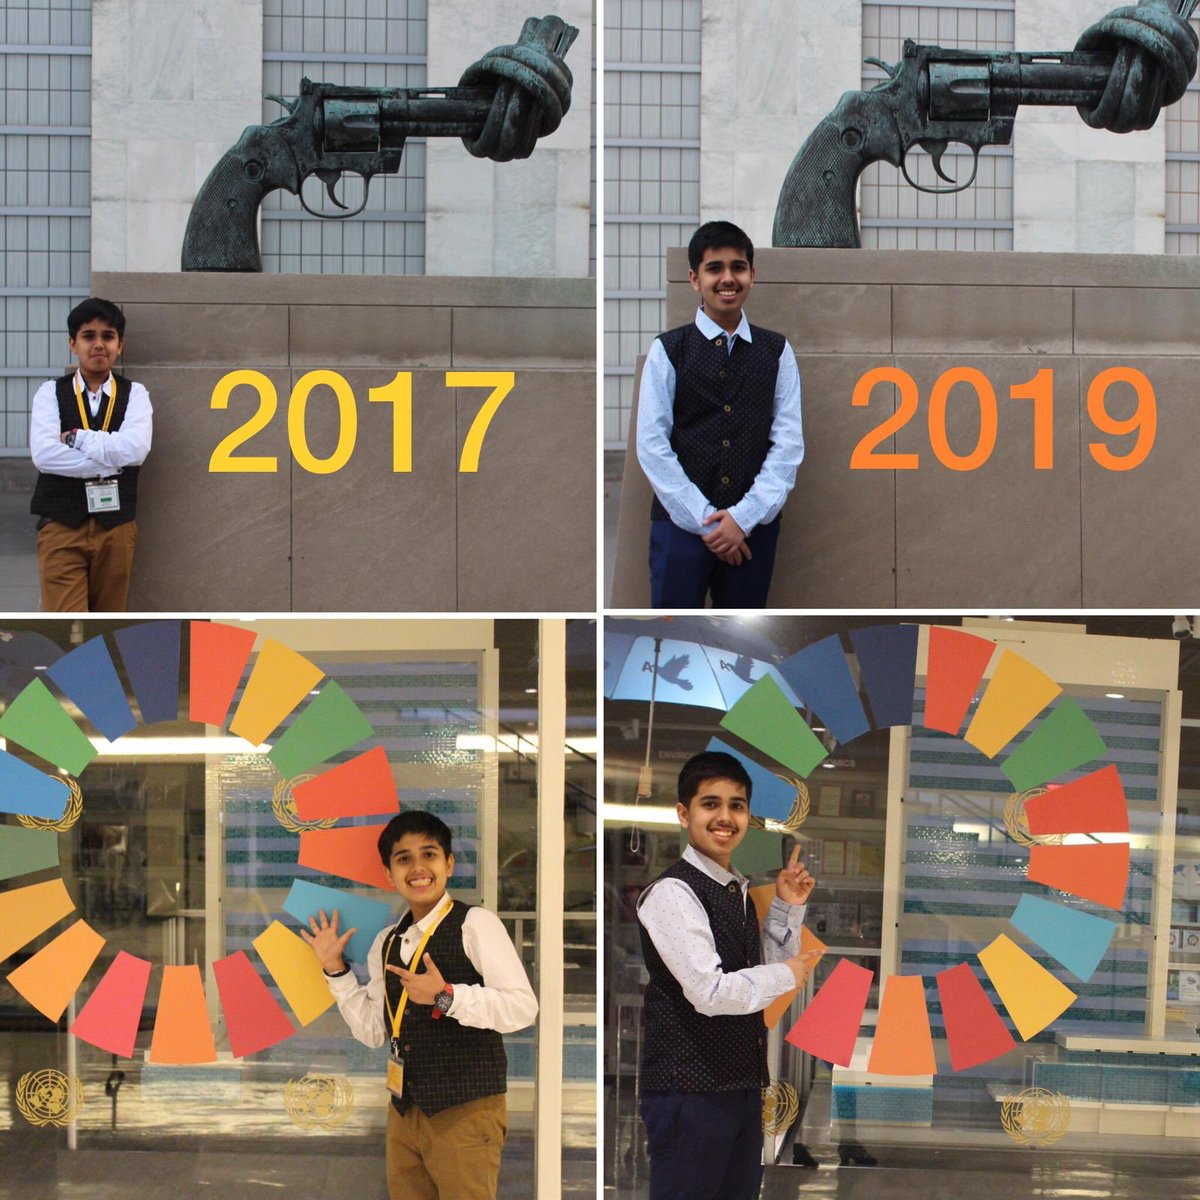 From #IndiaAmbassador (2017) to #IndiaAndCanadaAmbassador (2019) 👉Coming back to @UN after 2 years with more clearer vision and mission. Long journey ahead... #ShapingAFairerWorld @SDGsForChildren @TeachSDGs @AFIChangemakers @APappaILD @UNECOSOC #YouthForum2030 #GlobalGoals